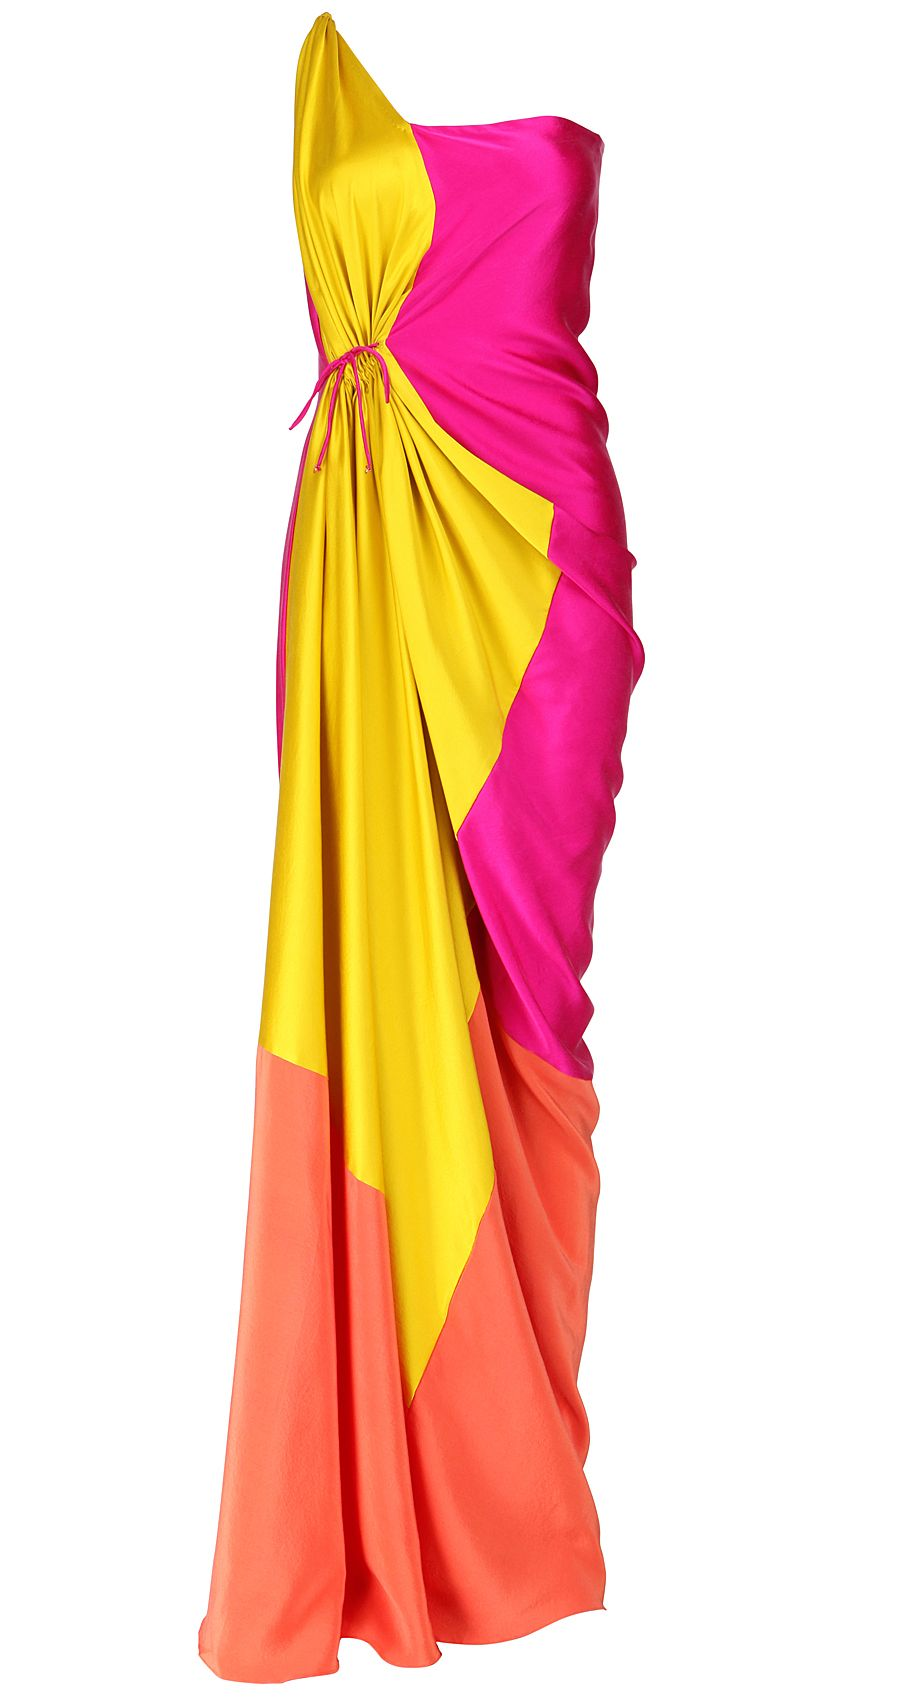 James ferreira color block drawstring gown my collection